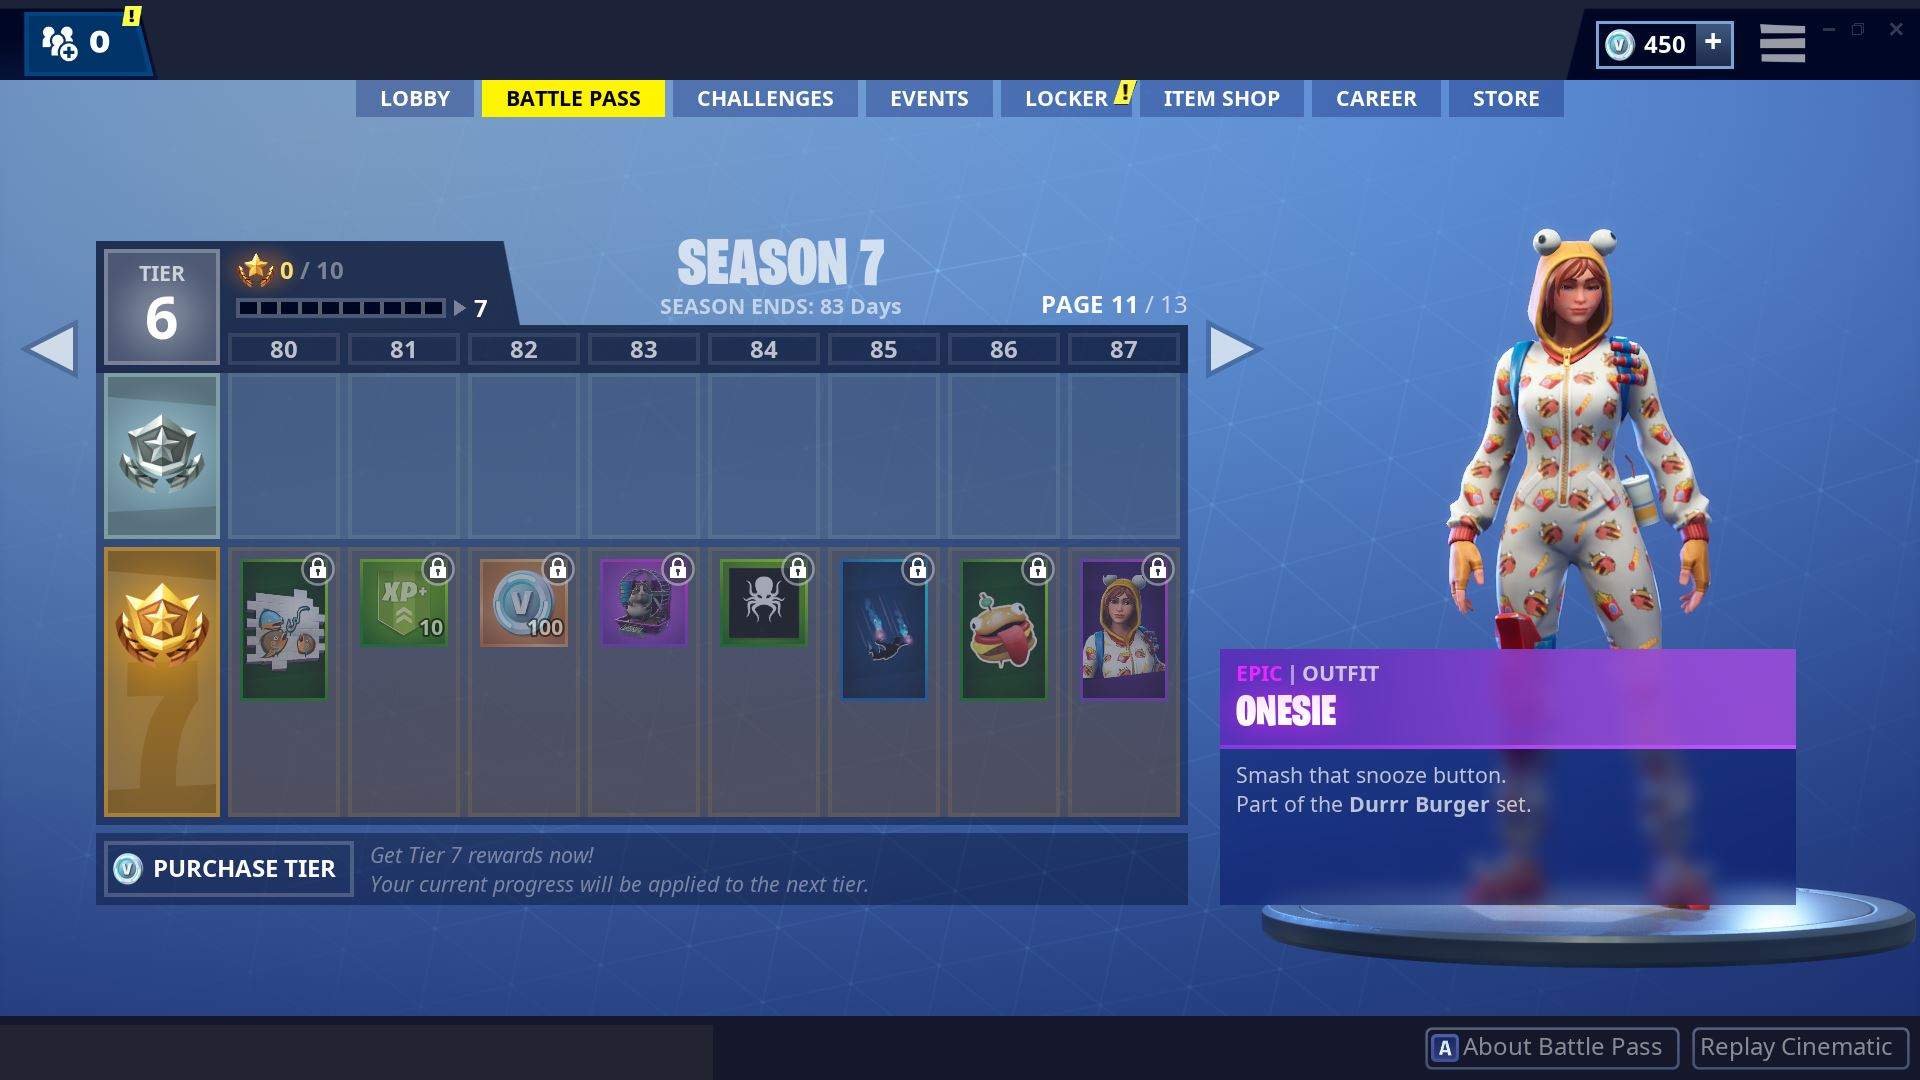 Fortnite Season 7 Battle Pass Page 11